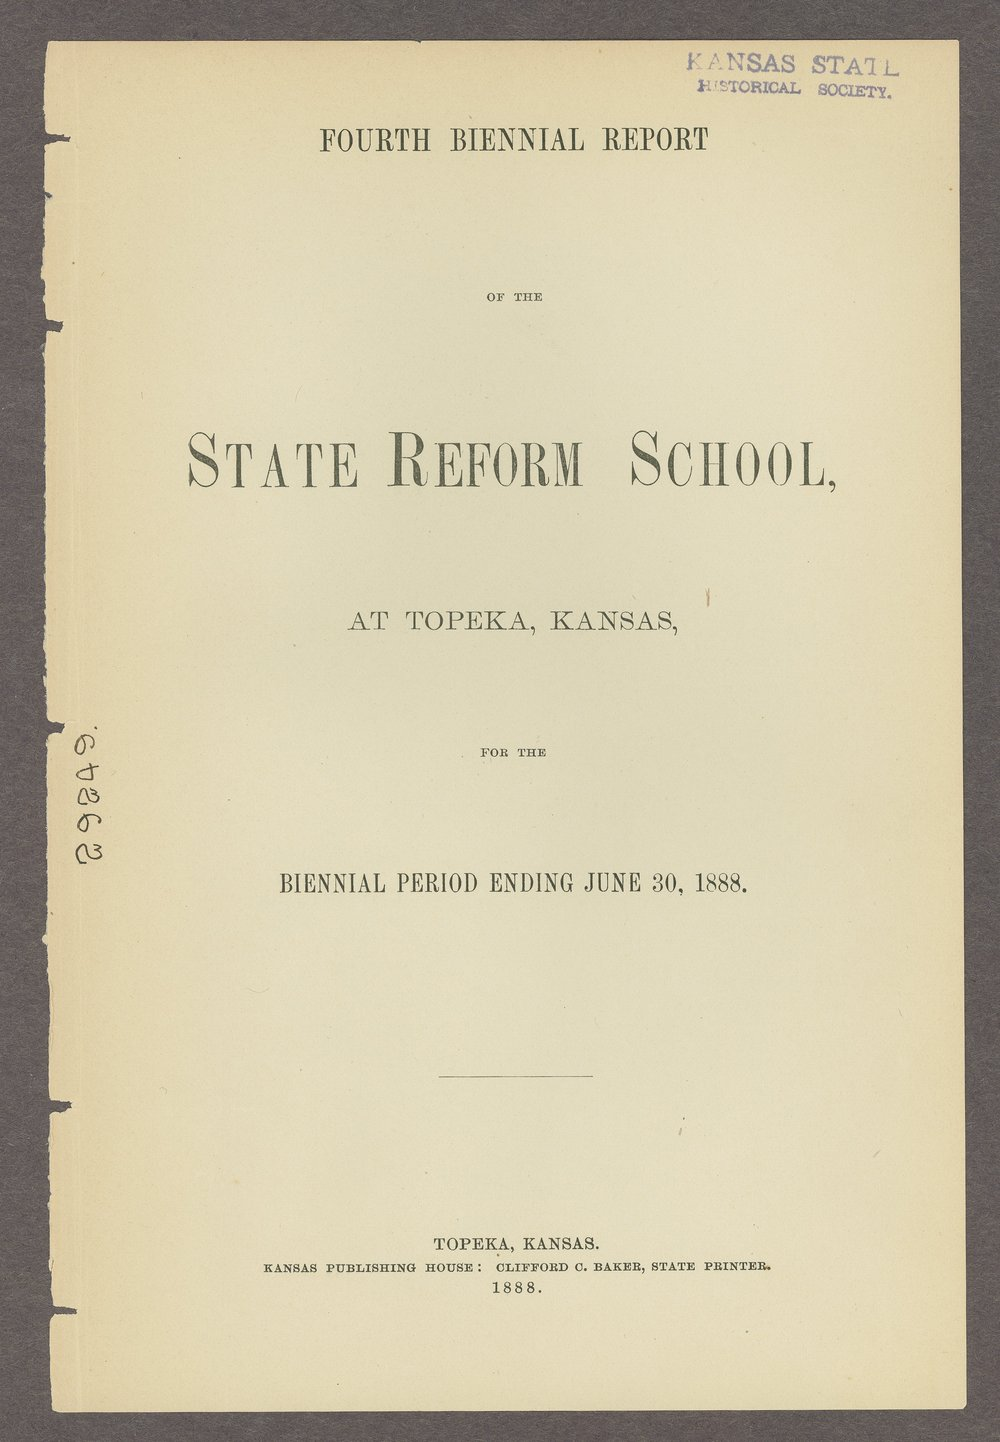 Biennial report of the State Reform School, 1888 - 1